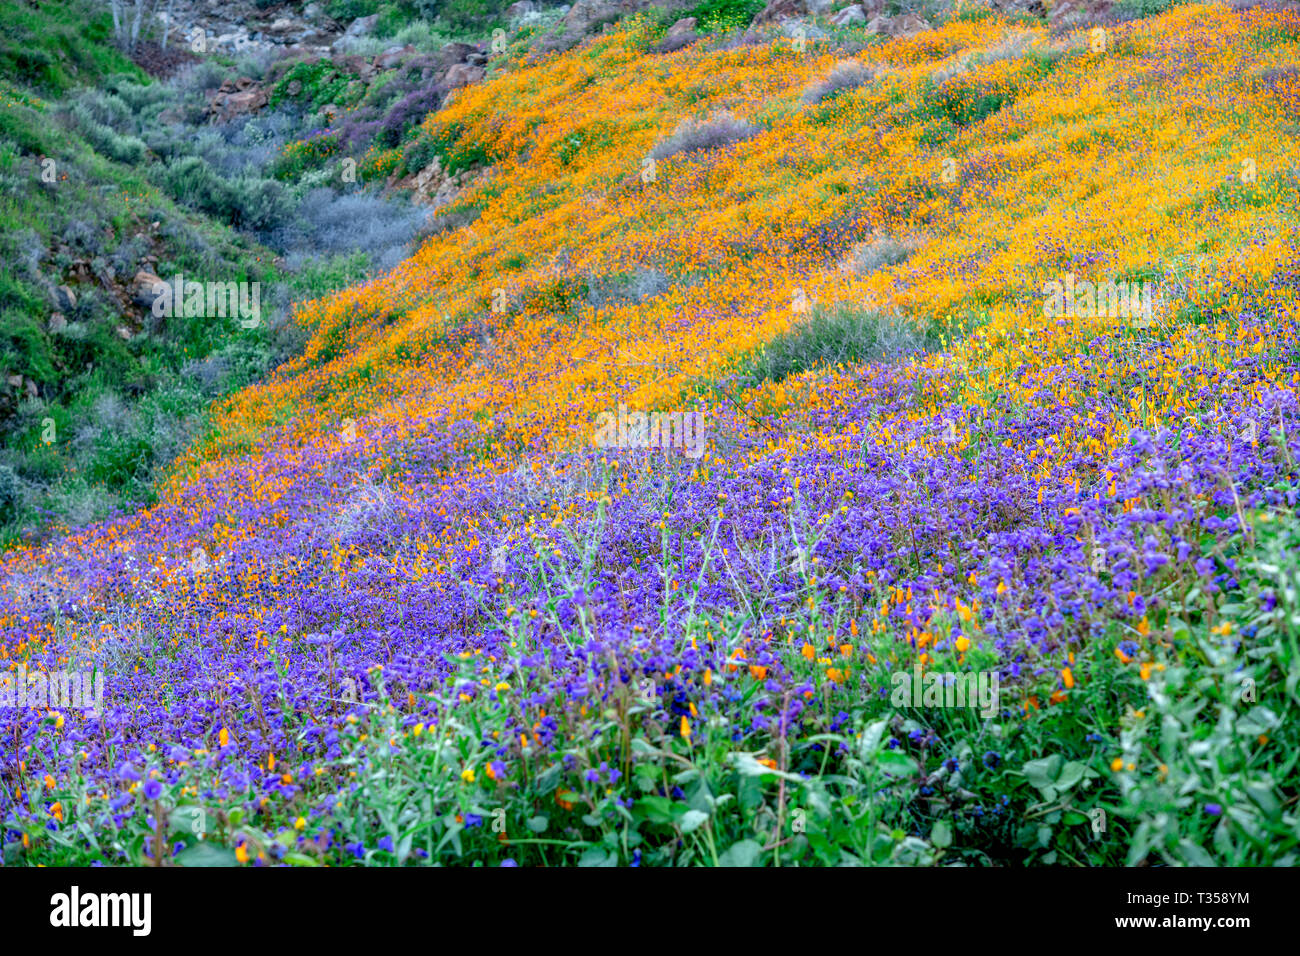 Vibrant poppies blooming on a hillside in Lake Elsinore bounce to the gentle breeze during a bright day. - Stock Image